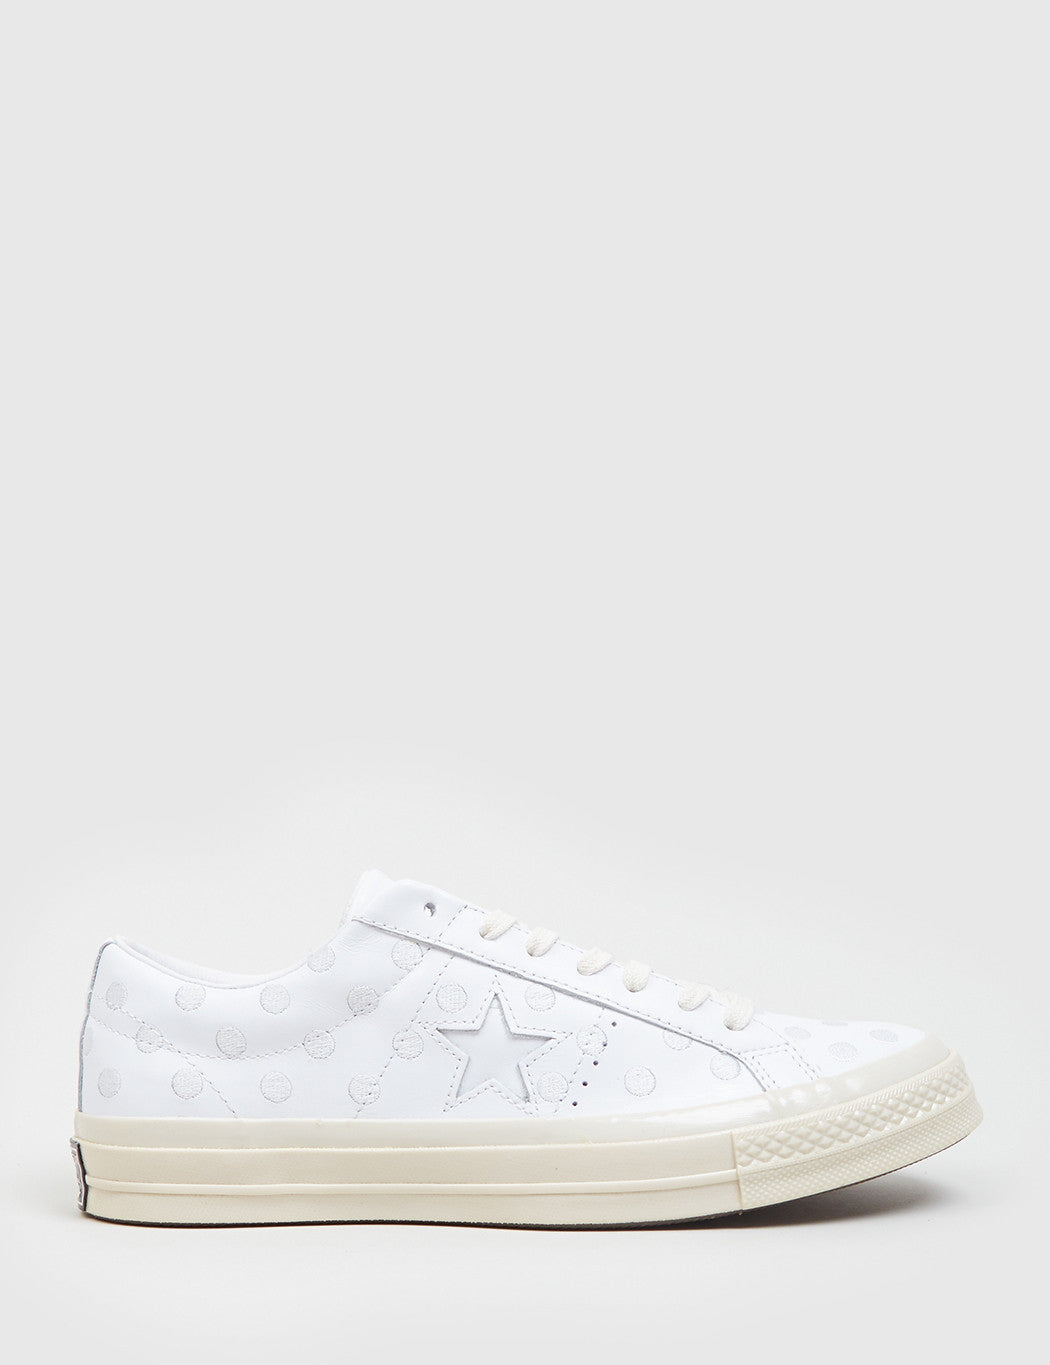 3e92d4f76caf55 Converse Leather One Star  74 (Polkadot Leather) - White ...